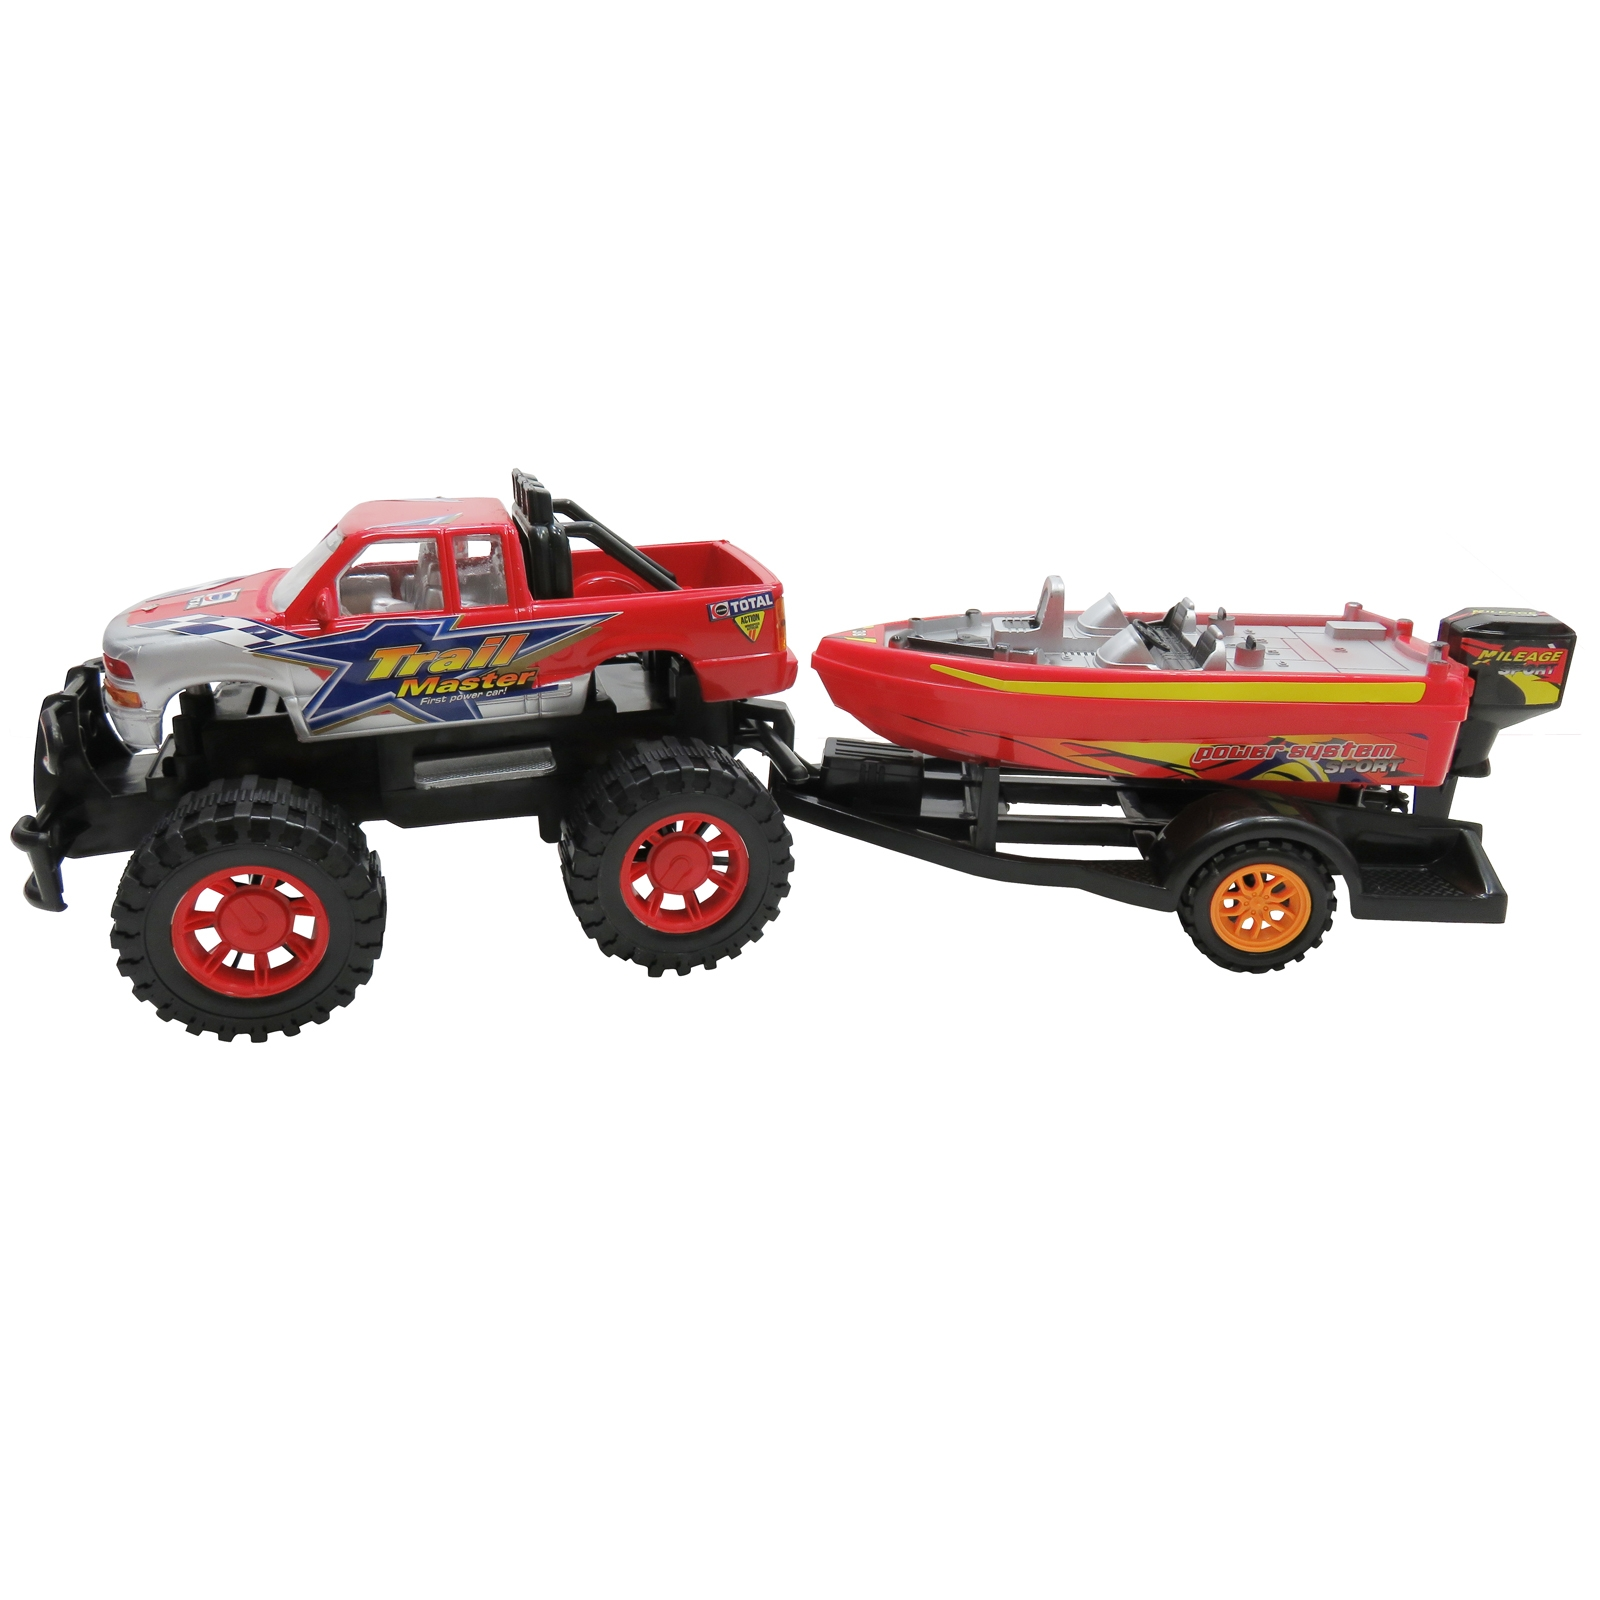 Path Blazer Friction Power Monster Truck Speed Boat Hauler With Trailer by KidPlay Products